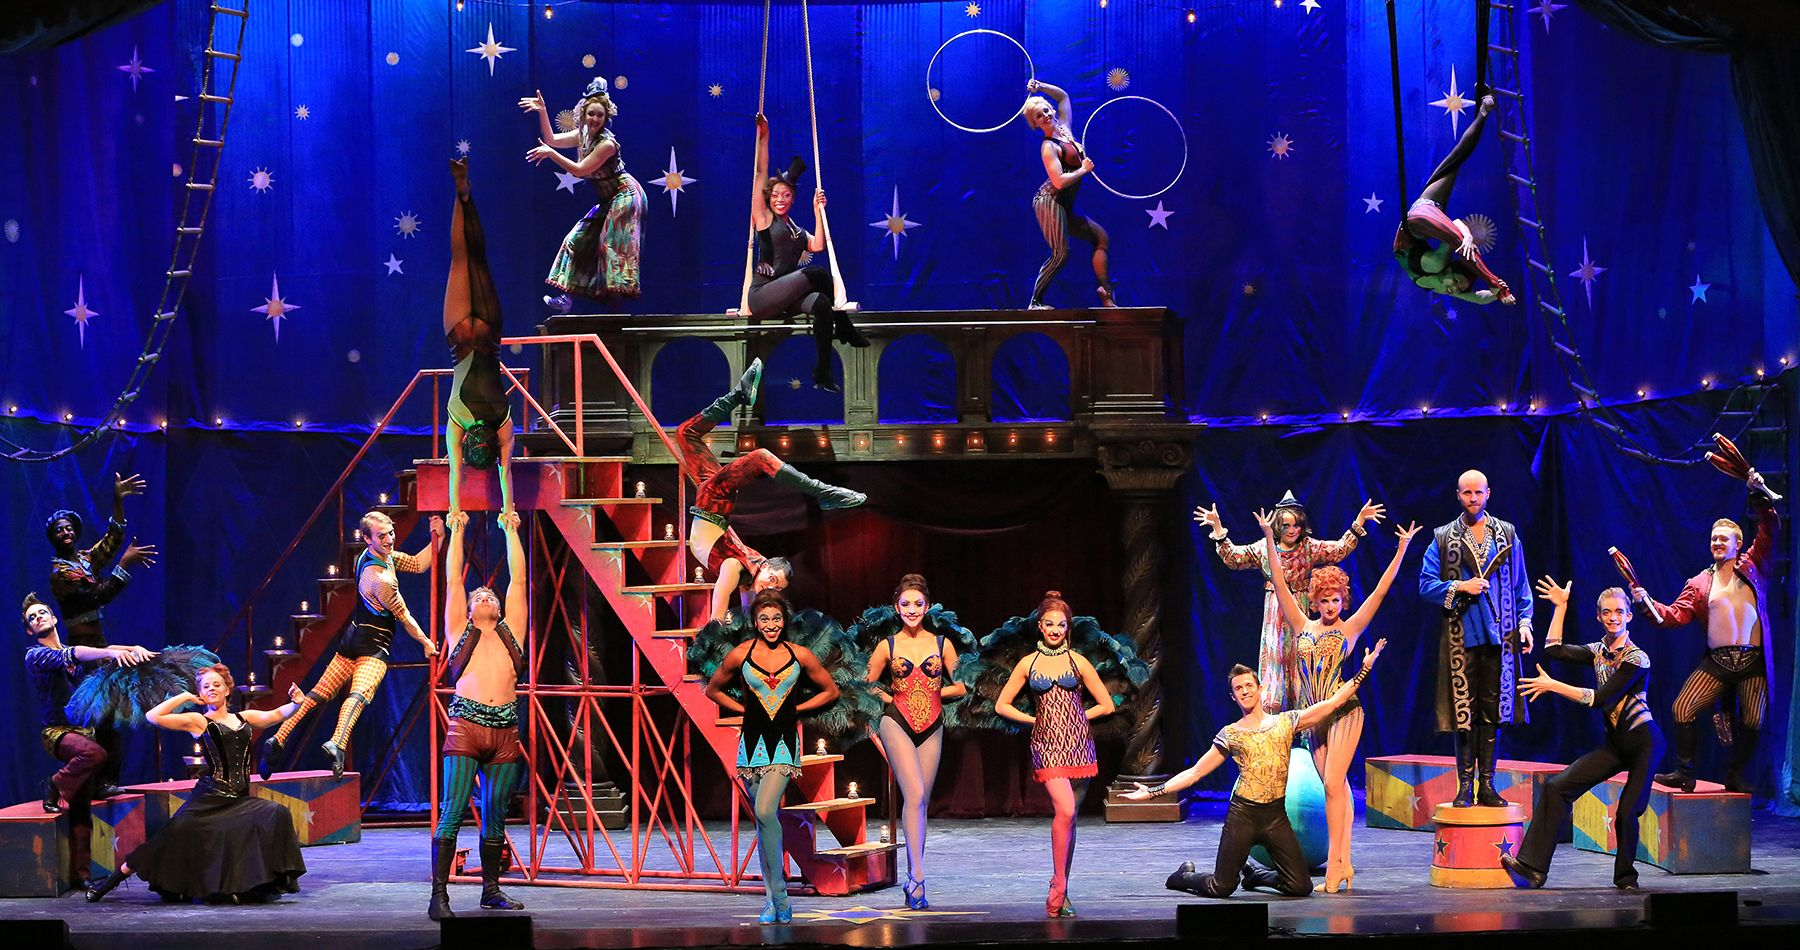 Broadway Palm's 'Pippin' eye-popping, jaw-dropping extravaganza